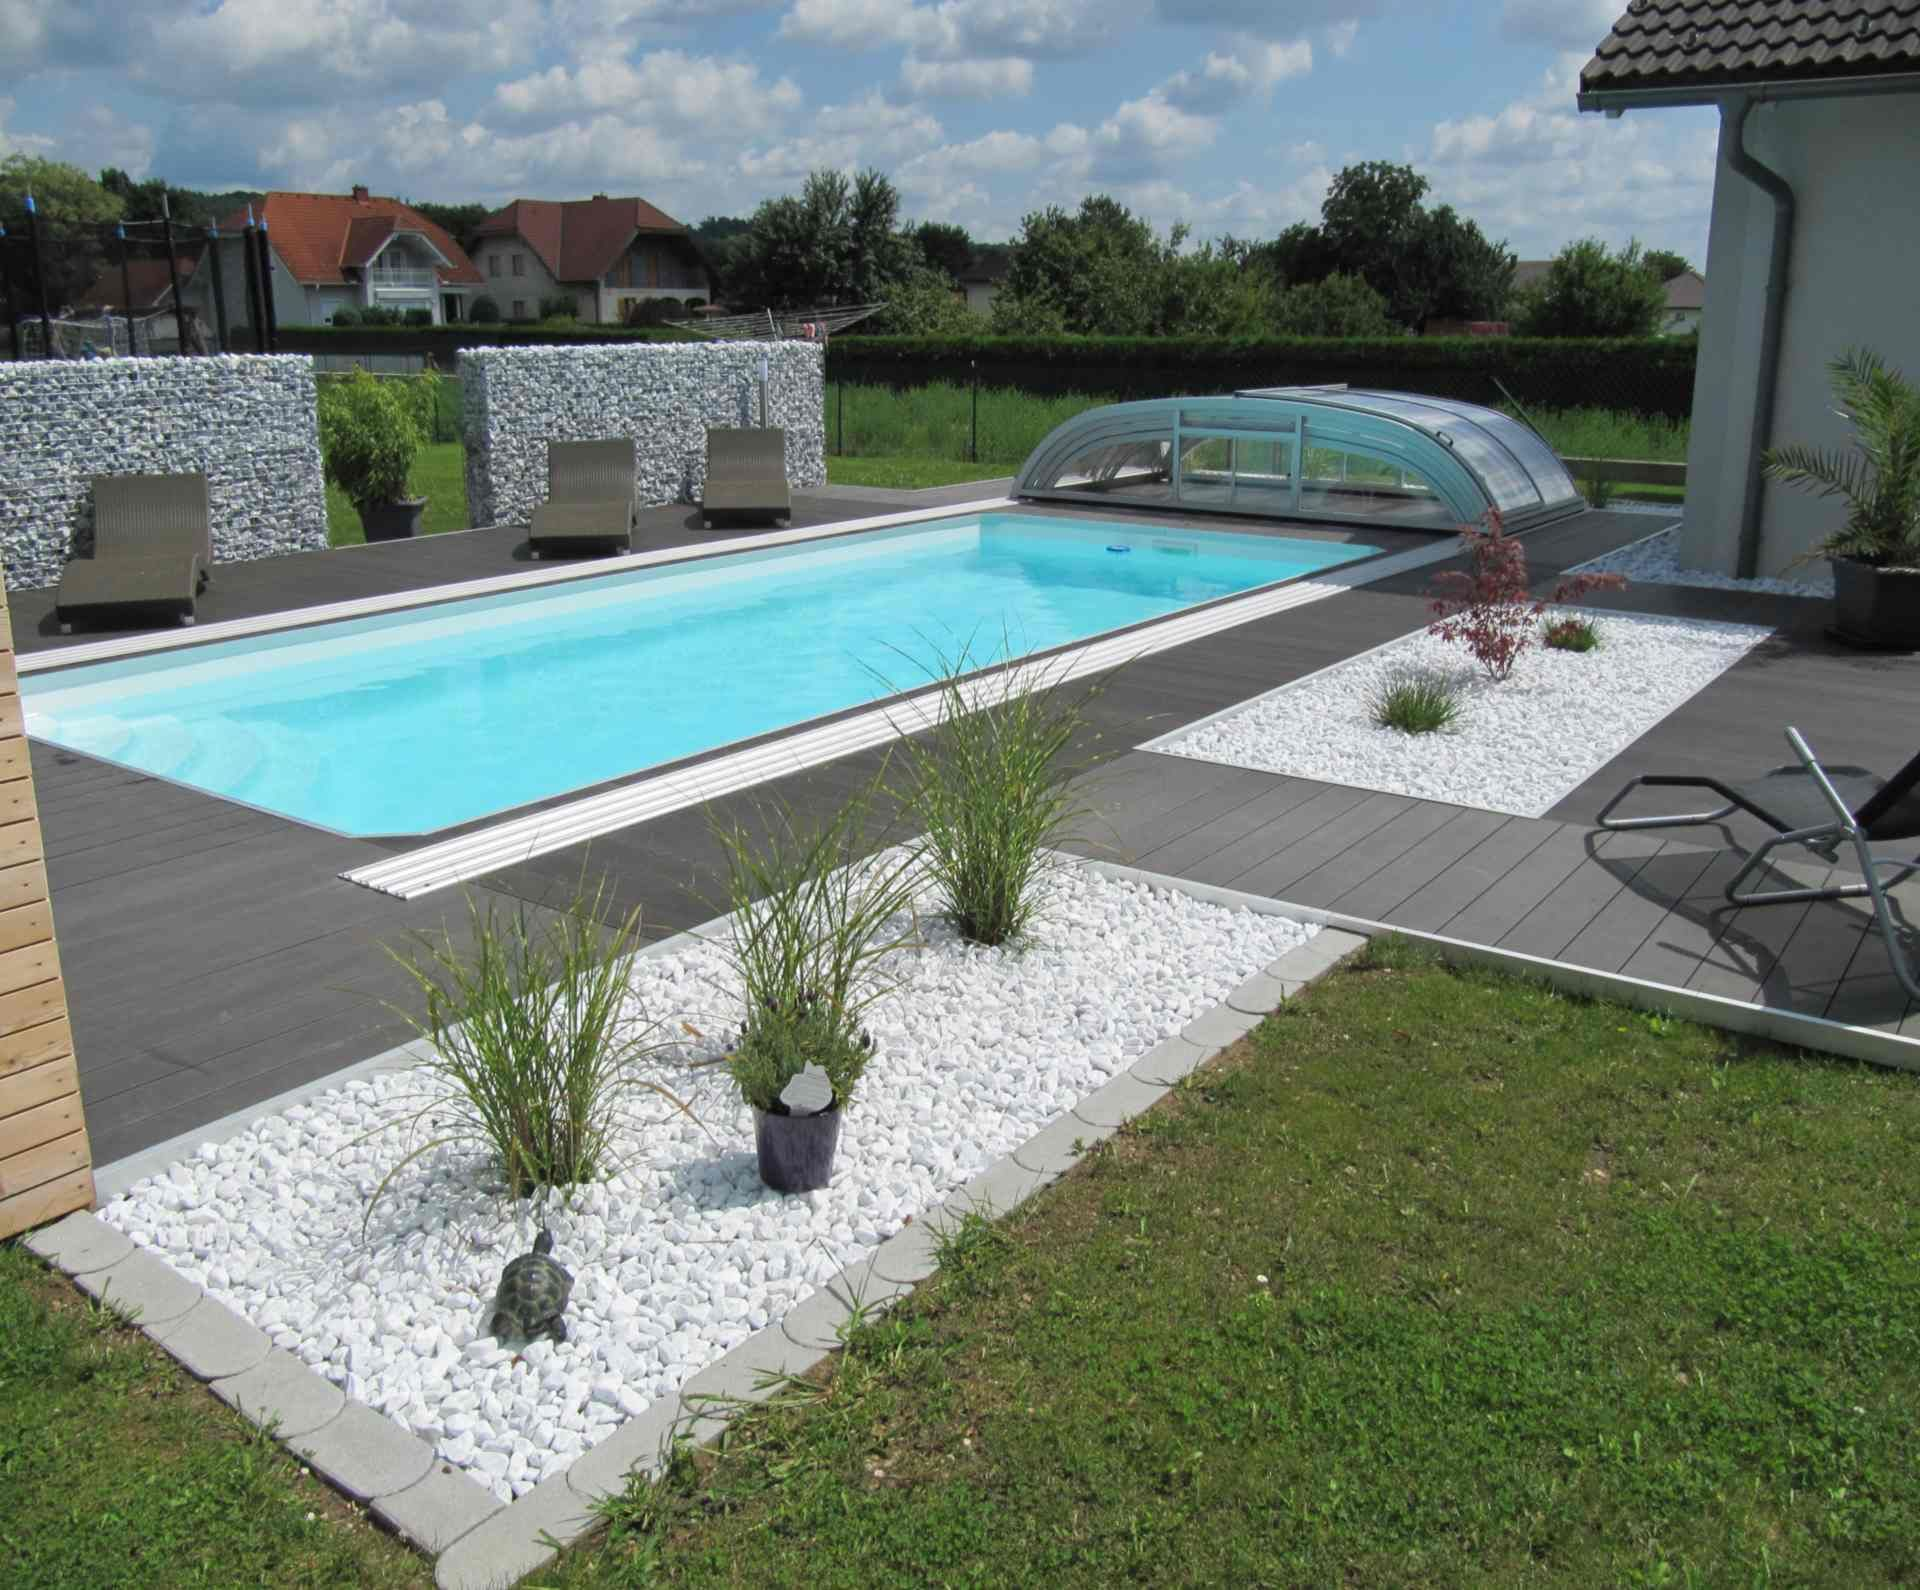 Pool Mit Umrandung Level Deck Swimming Pool Gartengestaltung In 2019 Pool